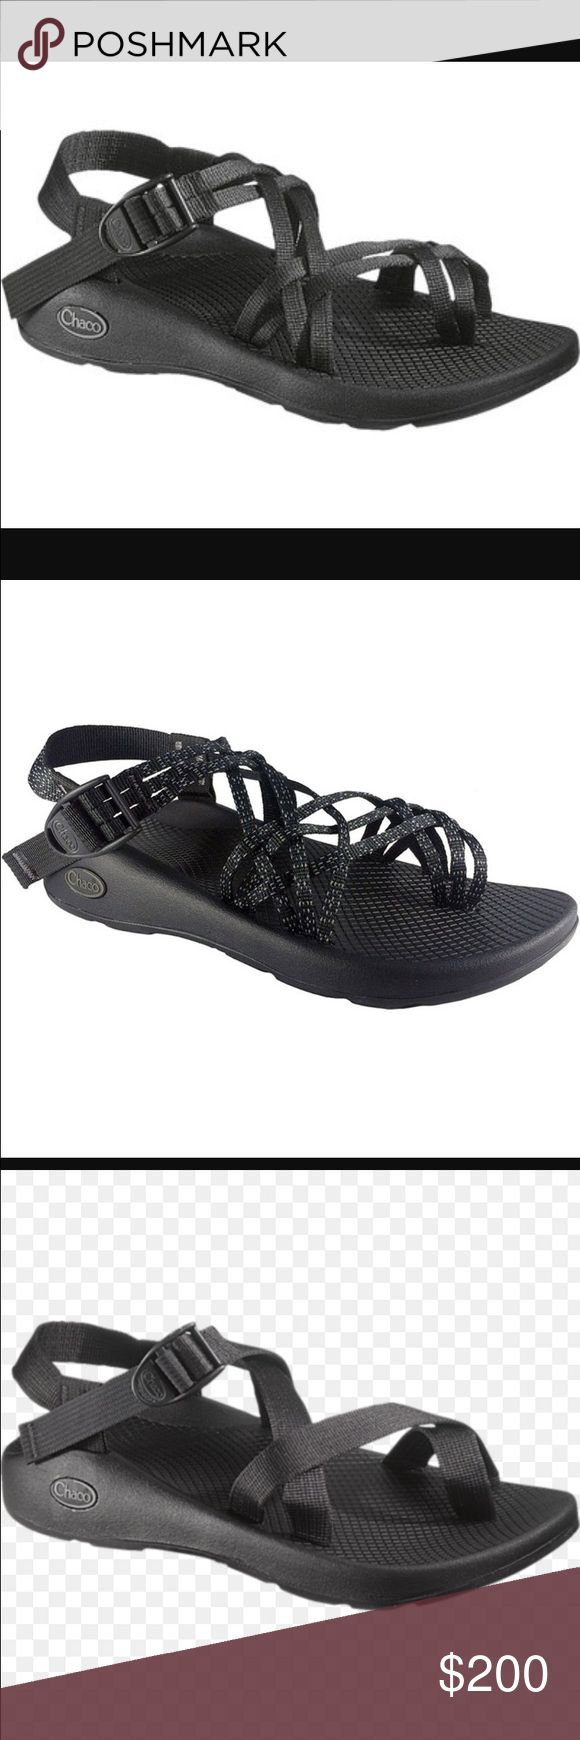 """Iso black chacos two strap three strap one strap Looking for these in a size 8 for a reasonable price. Would love to buy off 〽️ercari so that way u would be getting all the $ plus it wouldn't have to be so expensive for me. Looking to spend around $50 for one of these. Thanks comment and lmk. Don't comment if you're gonna be rude and just sell to someone else on here bc it's more """"convenient"""" for you. Chacos Shoes Sandals"""